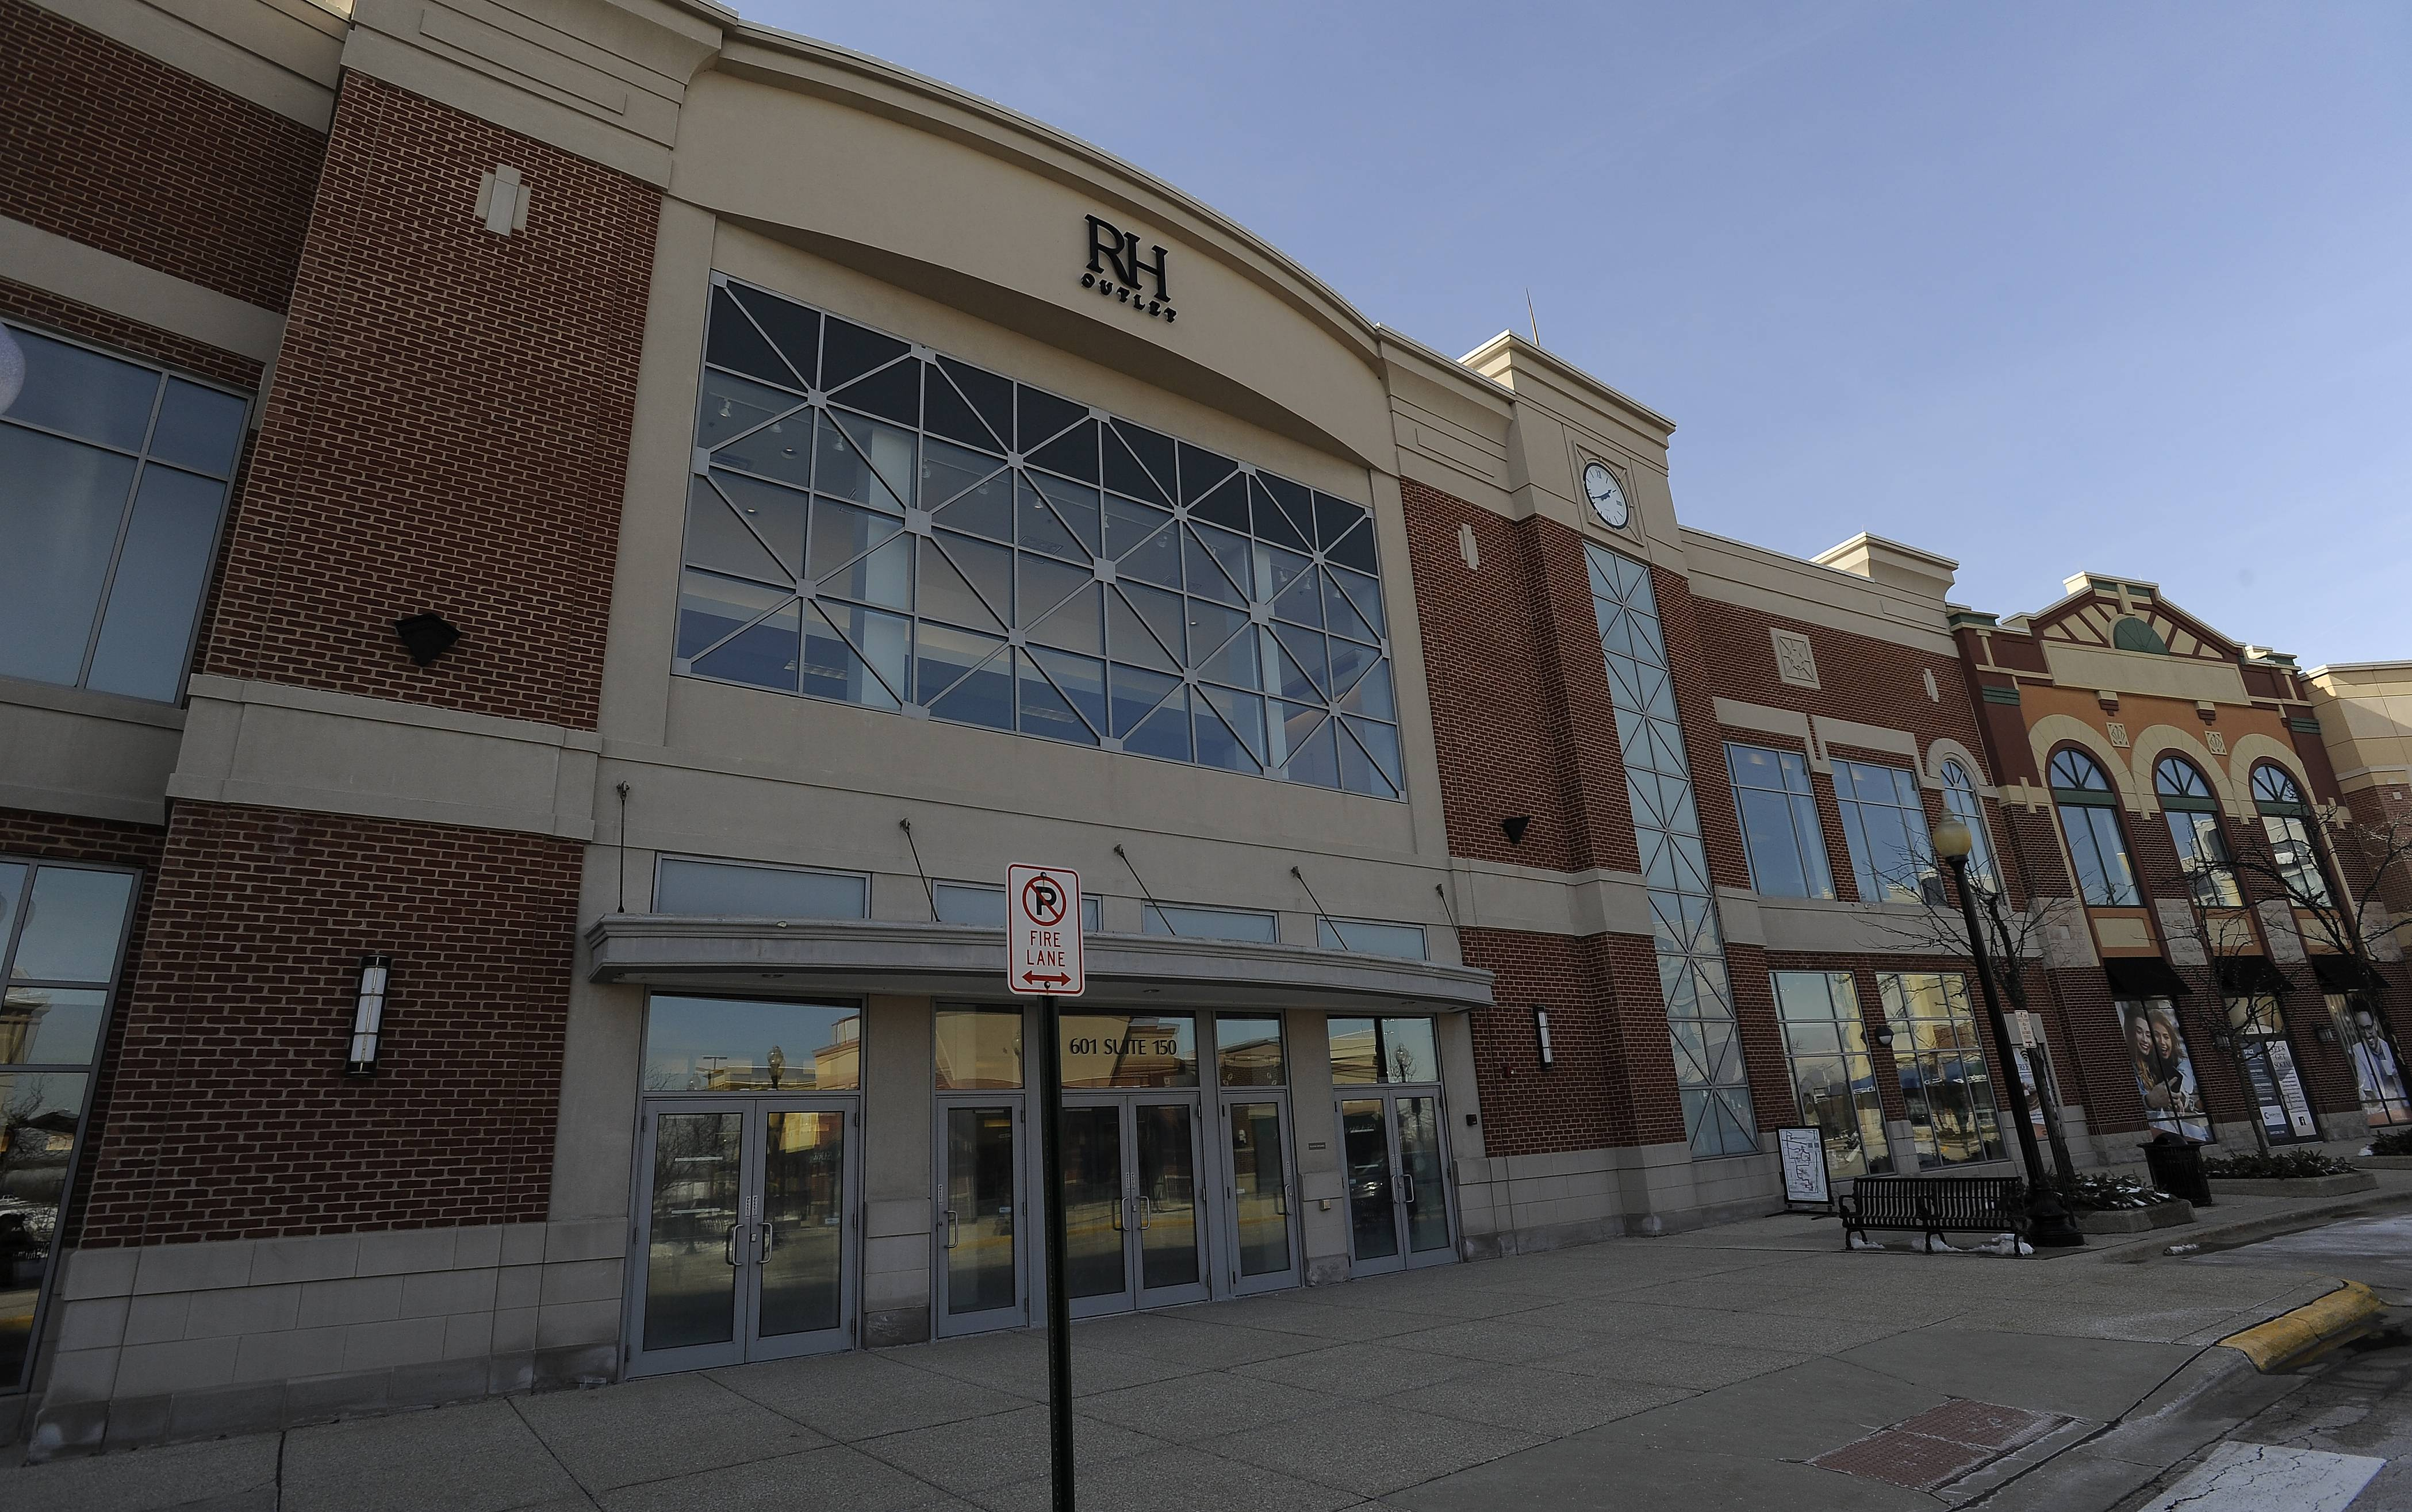 Restoration Hardware Outlet opens in former Schaumburg Carson's